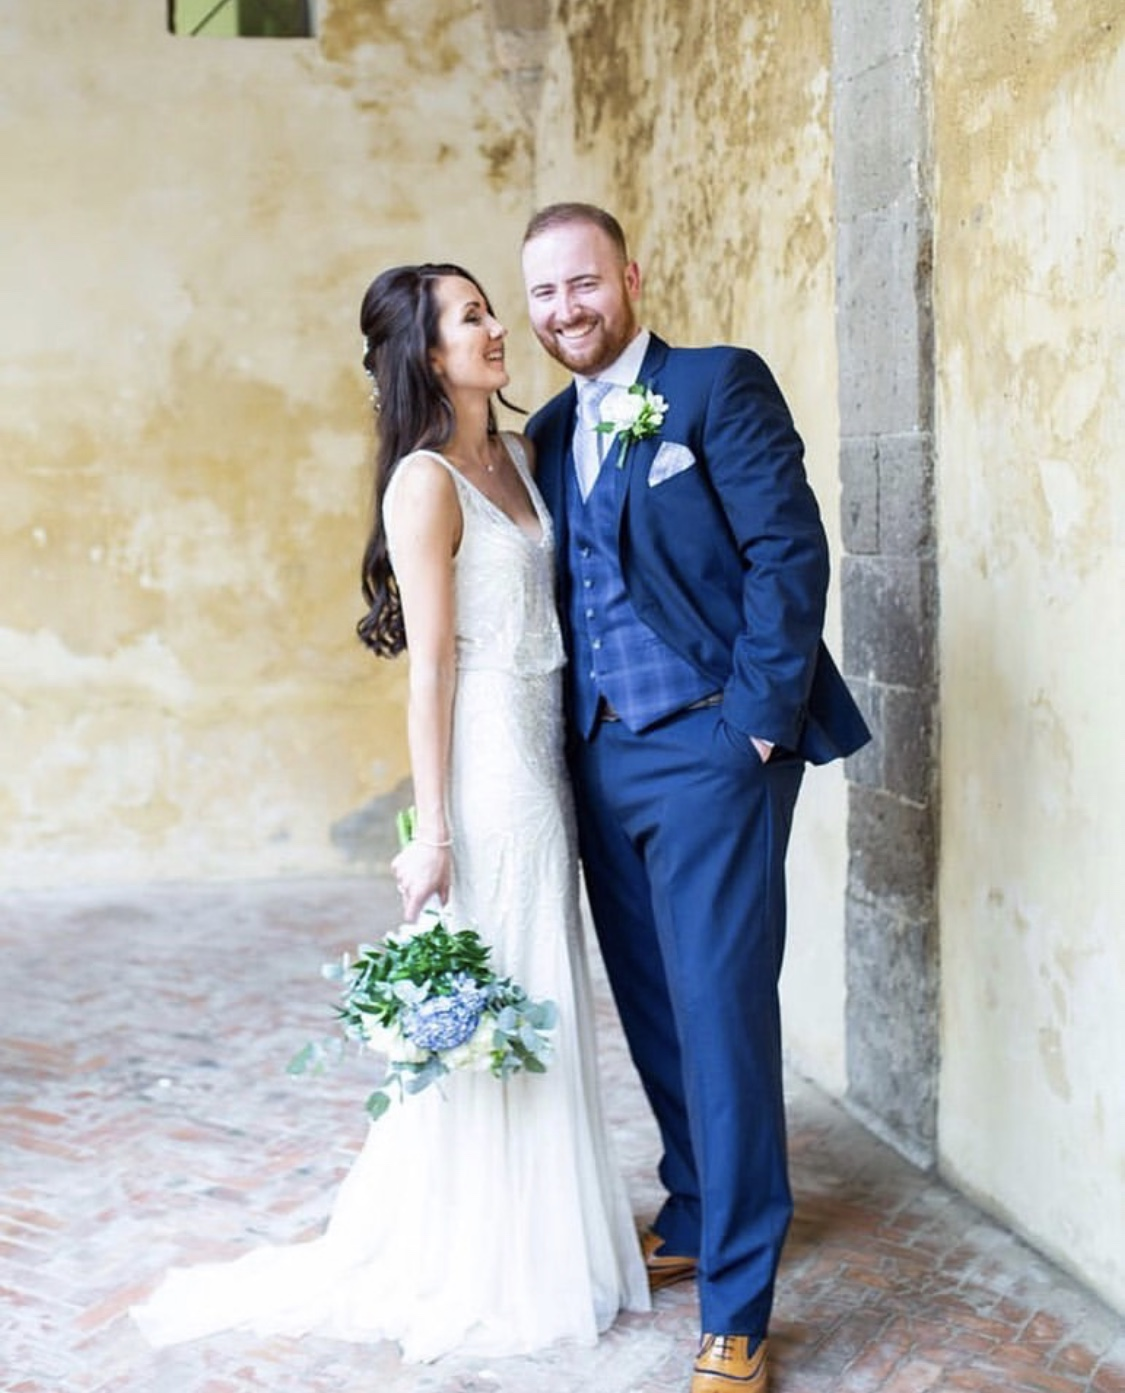 Yazz & Jake, May 2019 - Thank you so much for helping us plan the most incredible wedding - we had so many of our party telling us it was the best wedding they'd ever been to!Every single detail was thought of meaning our pre wedding event and wedding day ran so smoothly and the back up plan we didn't think we'd need was probably better than our original plan!It was a comfort that no matter what question we had you'd responded quickly, especially when it came to the documentation side of things. We also loved the fact that you were UK based so understood a lot of our traditions/ requirements.Your colleagues in Sorrento handled everything really well in our pre wedding visits and on the day coordination and made sure that we had everything we needed.All of the suppliers recommended were fabulous especially Cecelina and Jimena - well worth taking on advice!Thanks again and we could not recommend you highly enough for any couple looking to get married in Italy (or the UK now you've expanded!) - we'll miss working with you!